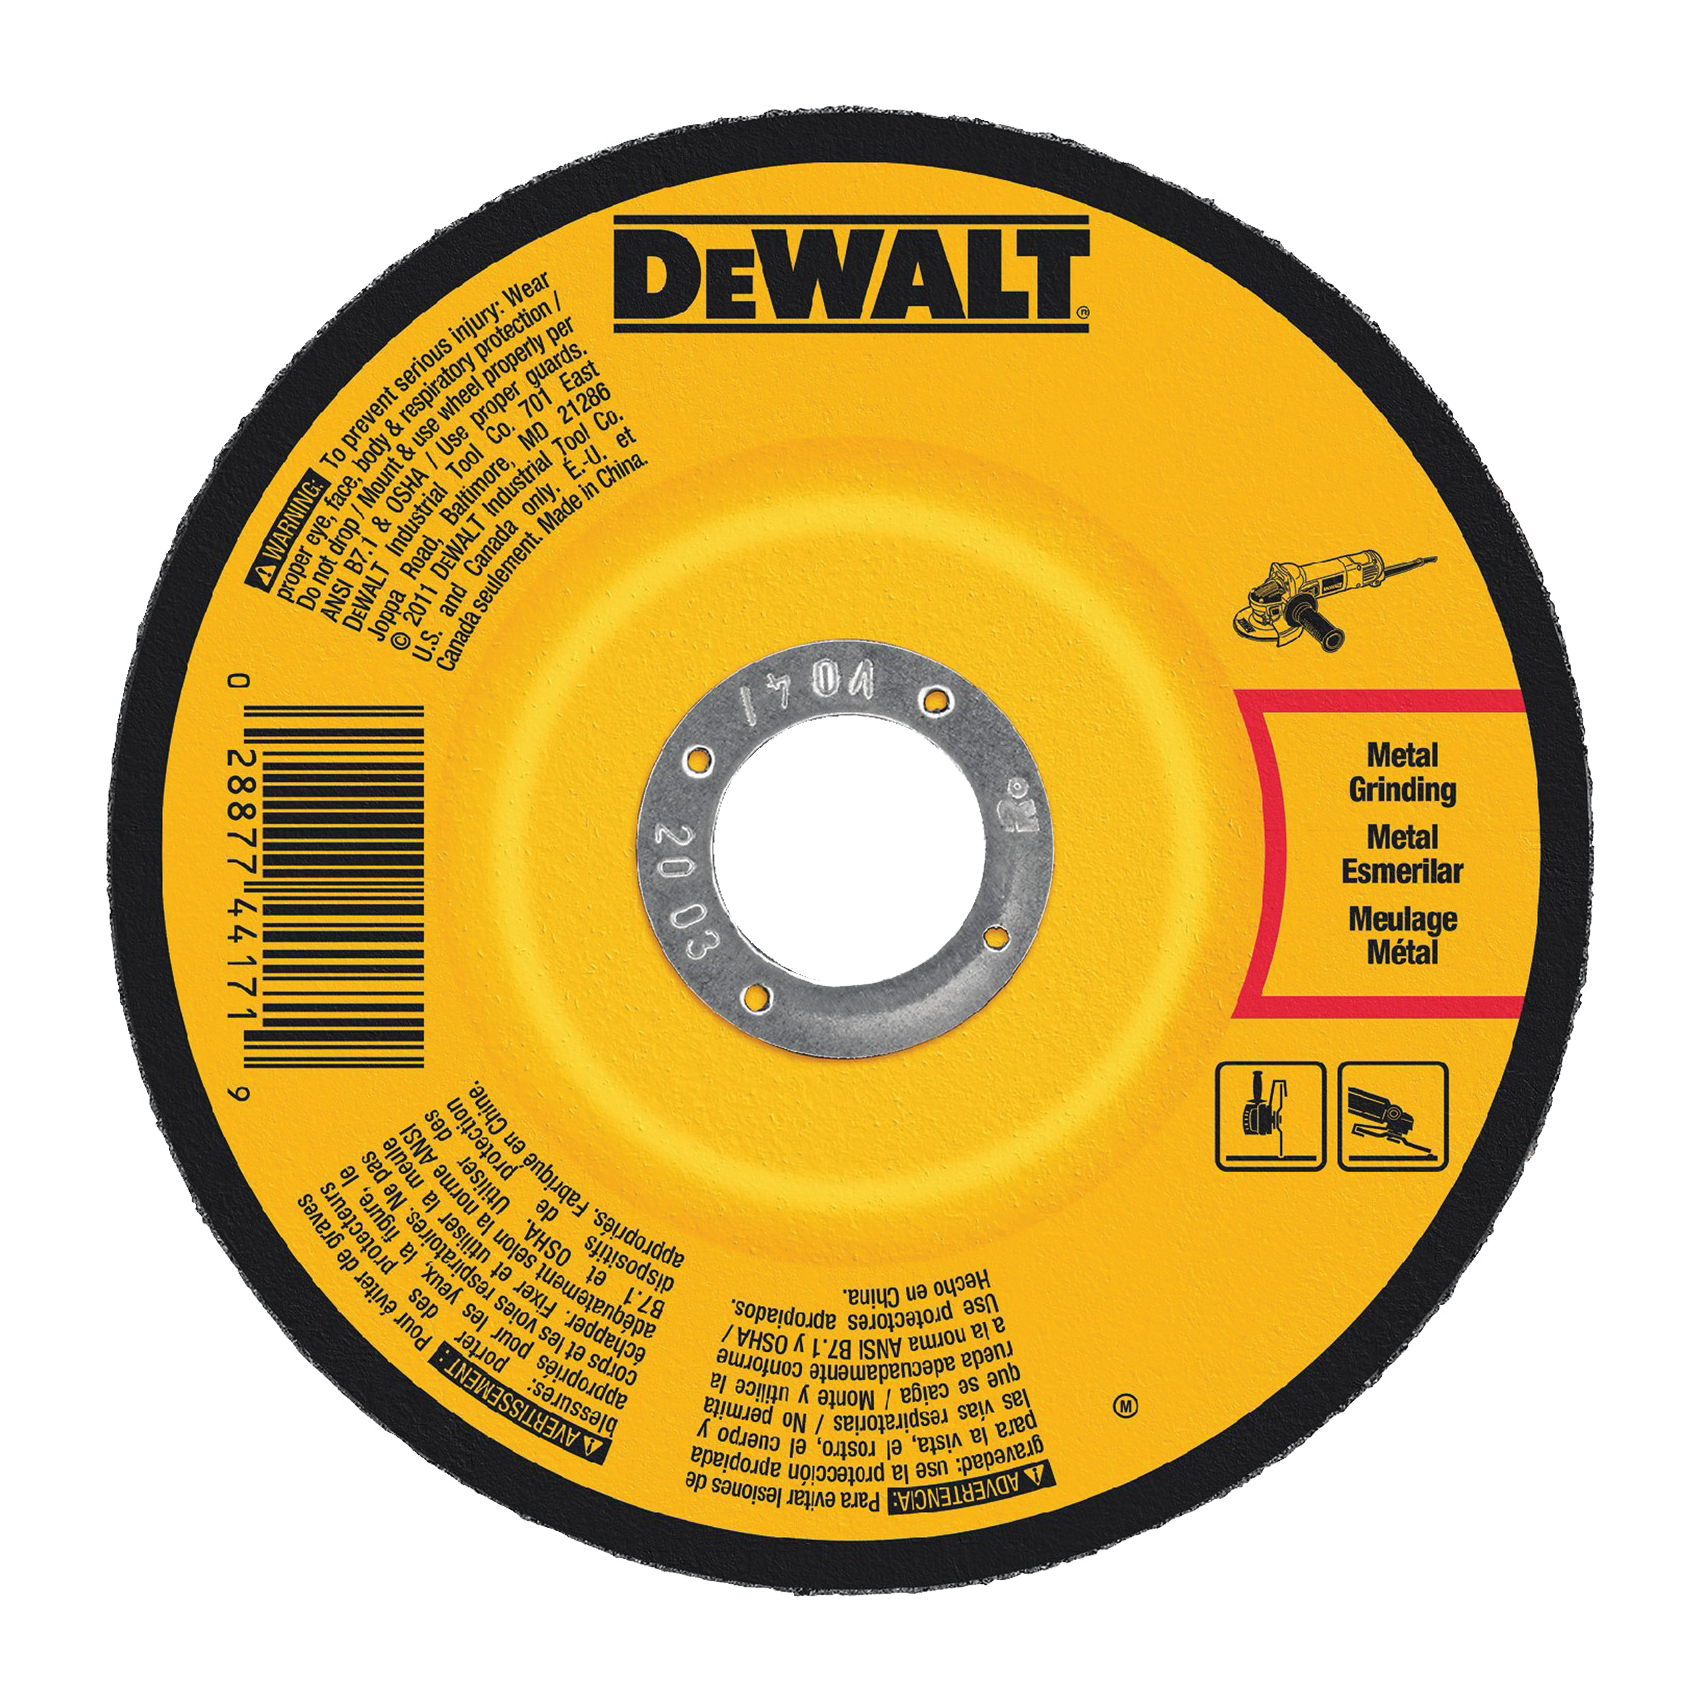 Picture of DeWALT DW4542 Grinding Wheel, 4-1/2 in Dia, 1/4 in Thick, 5/8-11 in Arbor, 24 Grit, Aluminum Oxide Abrasive